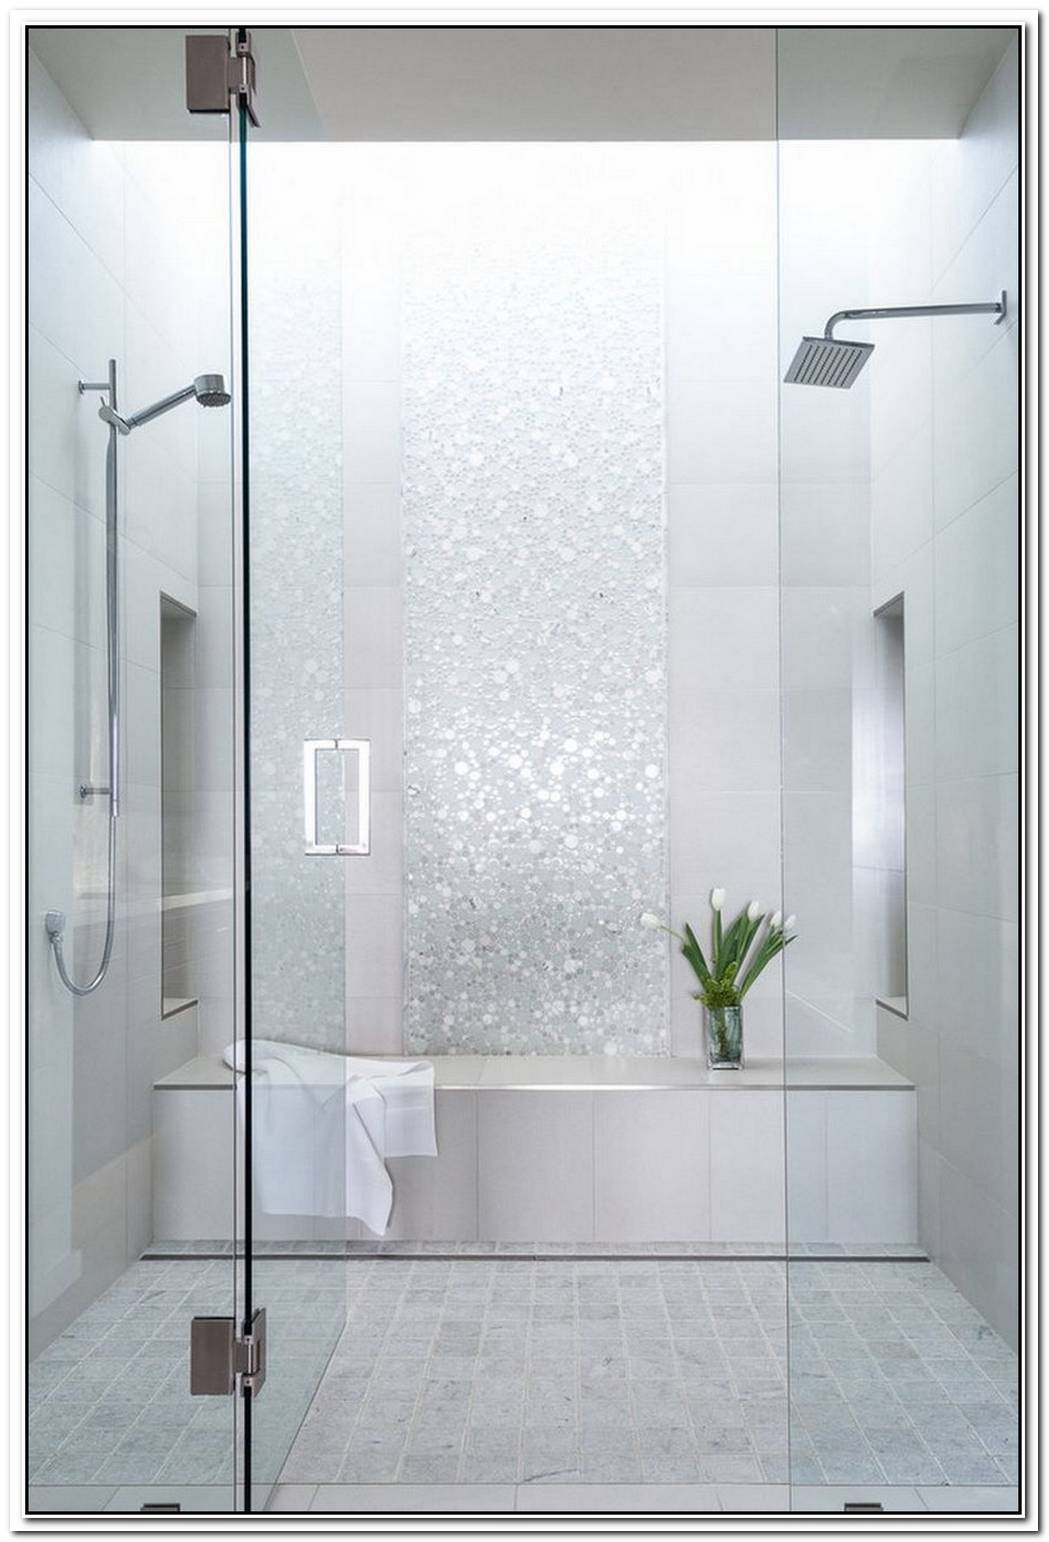 Shower PowerUnforgettable Designs To Wash Away Your Cares